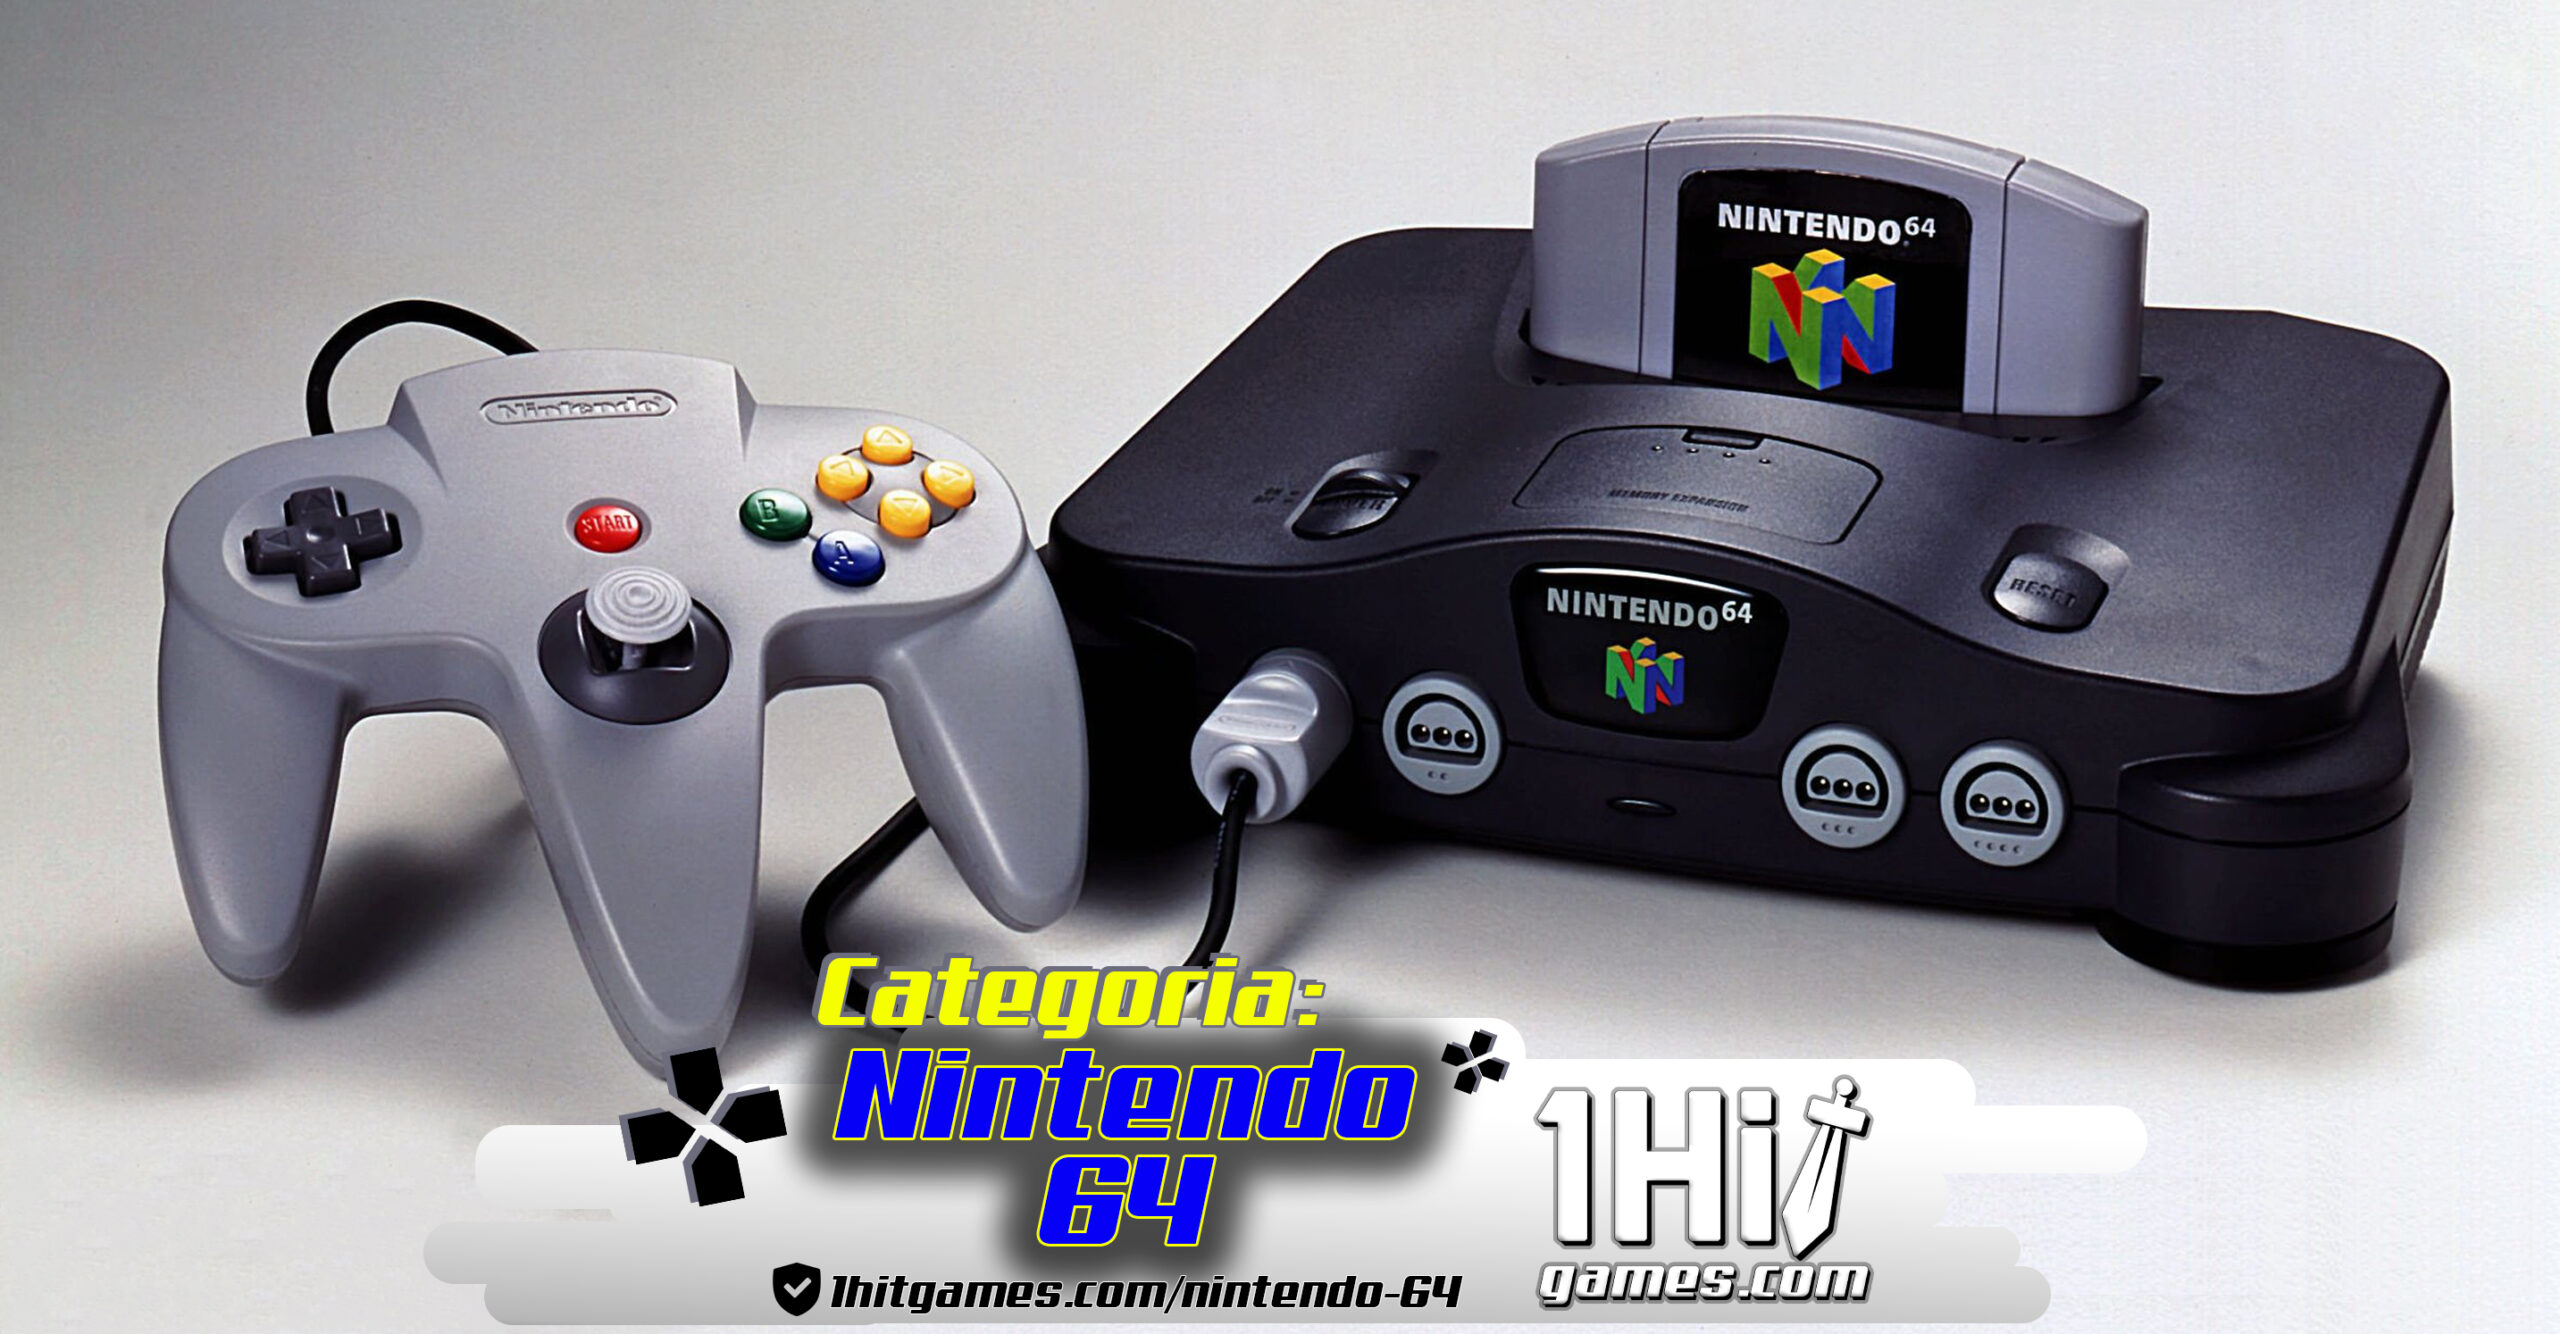 nintendo 64 1hitgames gaming gamer 1hit categorias conttrol controles 4 fita cartucho 64bits N64